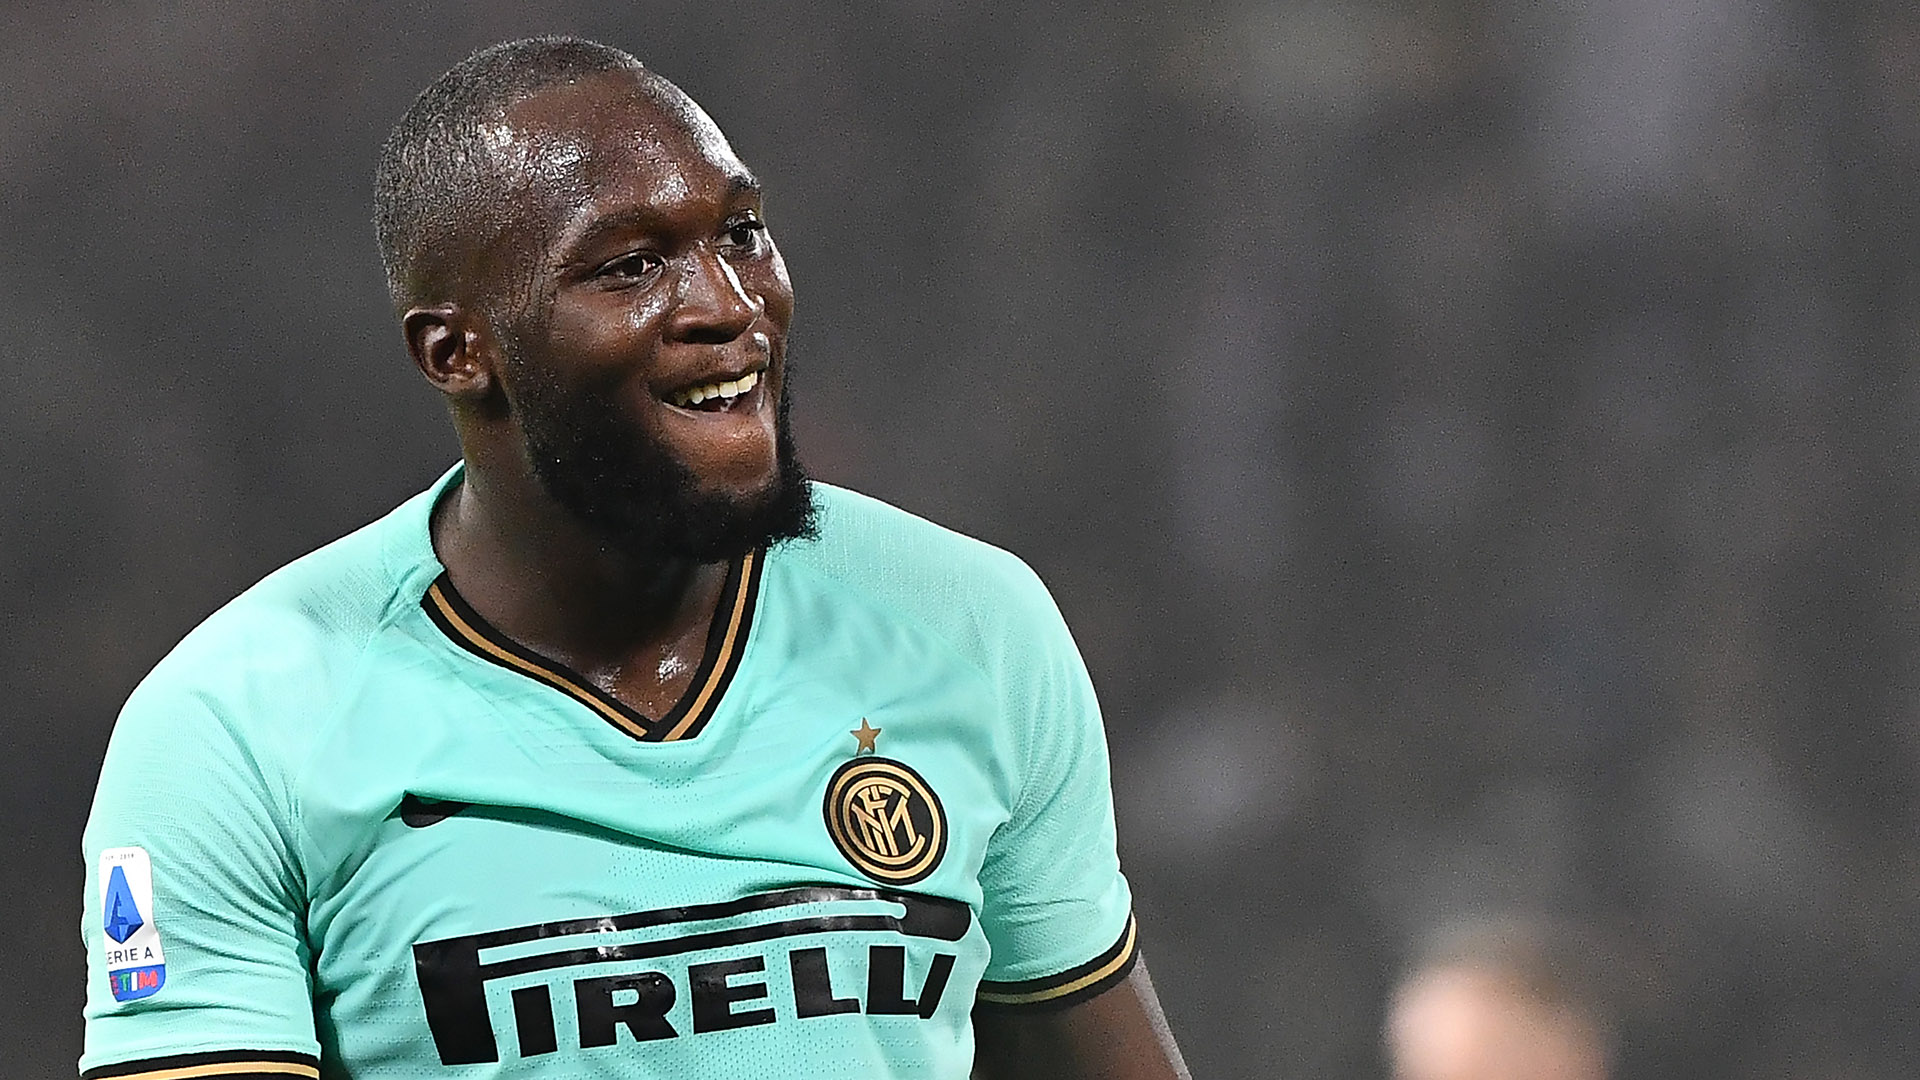 Lukaku equals Ronaldo goalscoring record as Man Utd loanee continues to impress in Italy